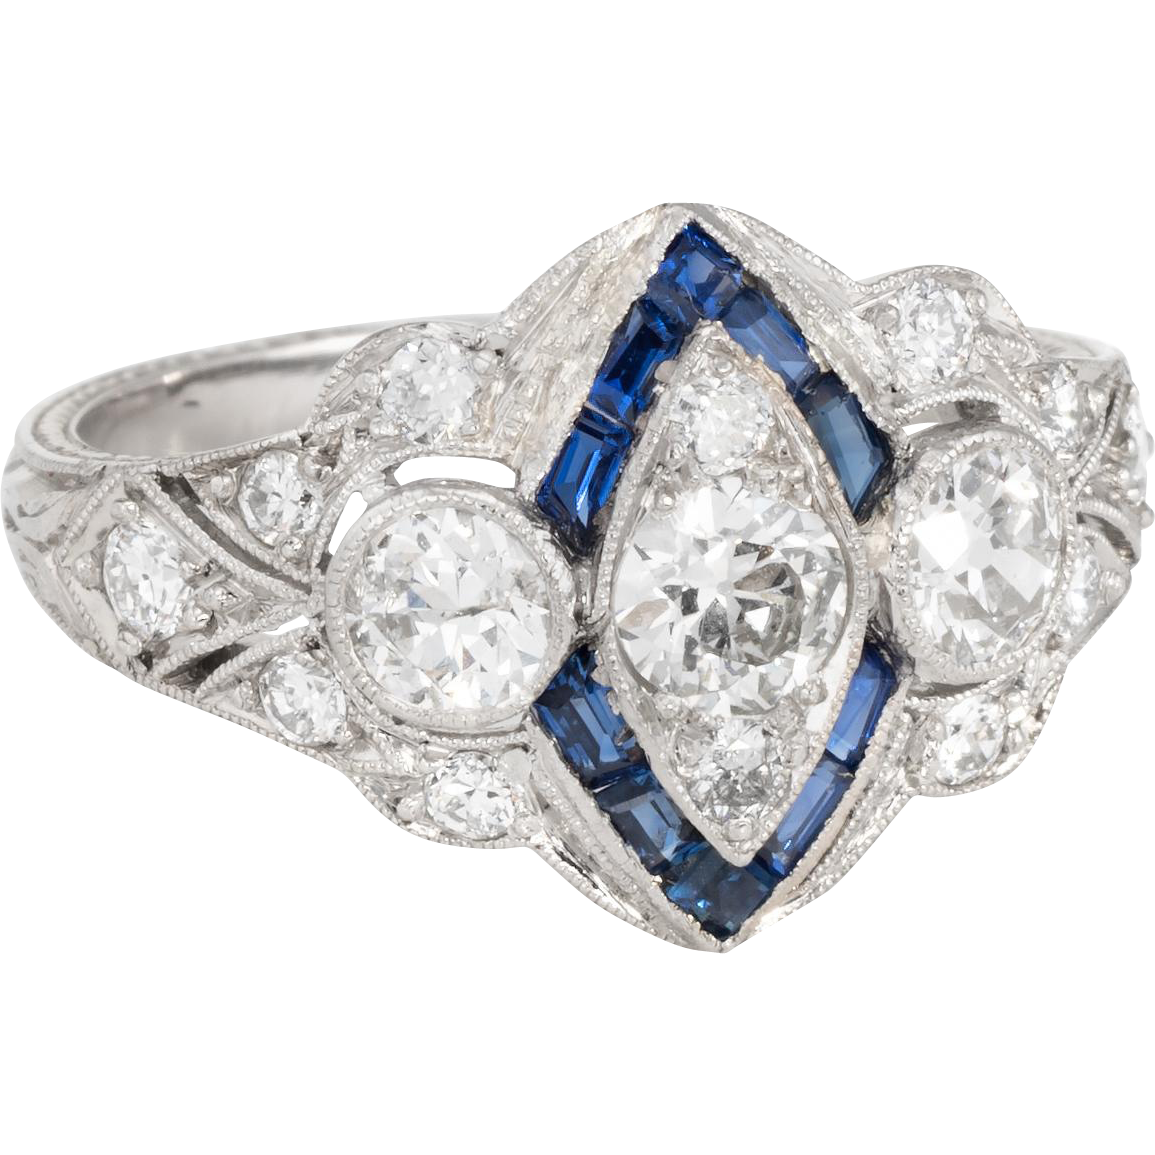 8a368b224 Vintage Art Deco Diamond Sapphire 900 Platinum Embossed Cocktail Ring  Estate Jewelry #ArtDeco #artdecoring #vintagejewelry #antiquejewelry  #engagementring # ...